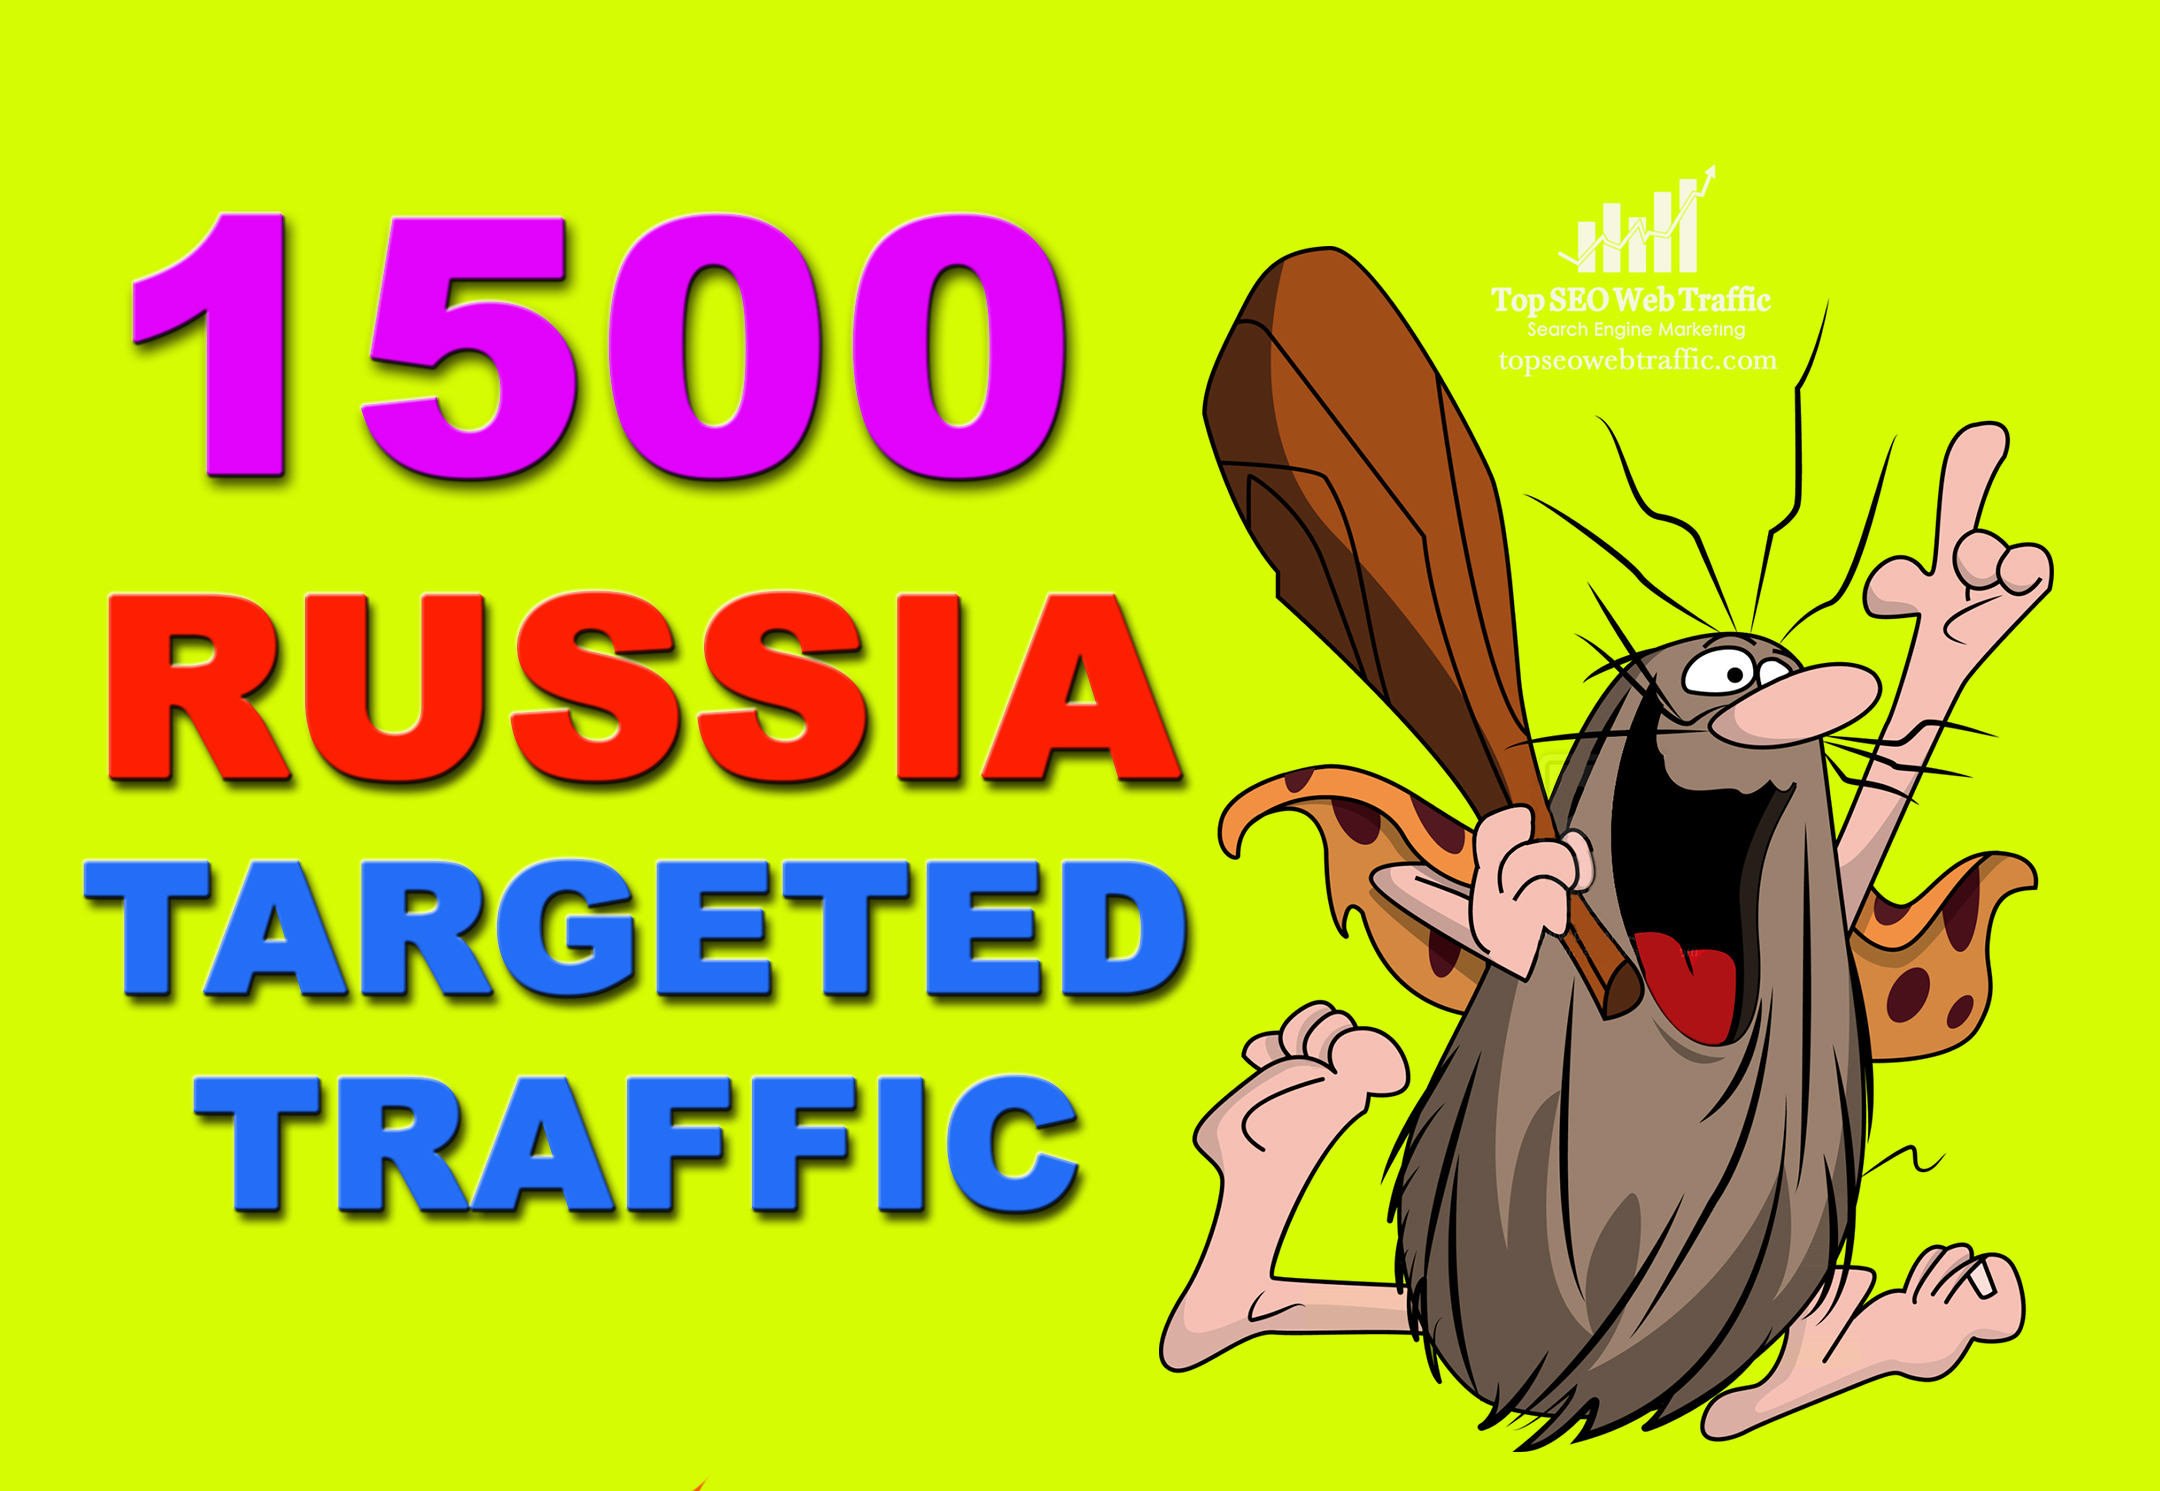 GET 1,500 HIGH QUALITY RUSSIA WEB TRAFFIC VISITORS